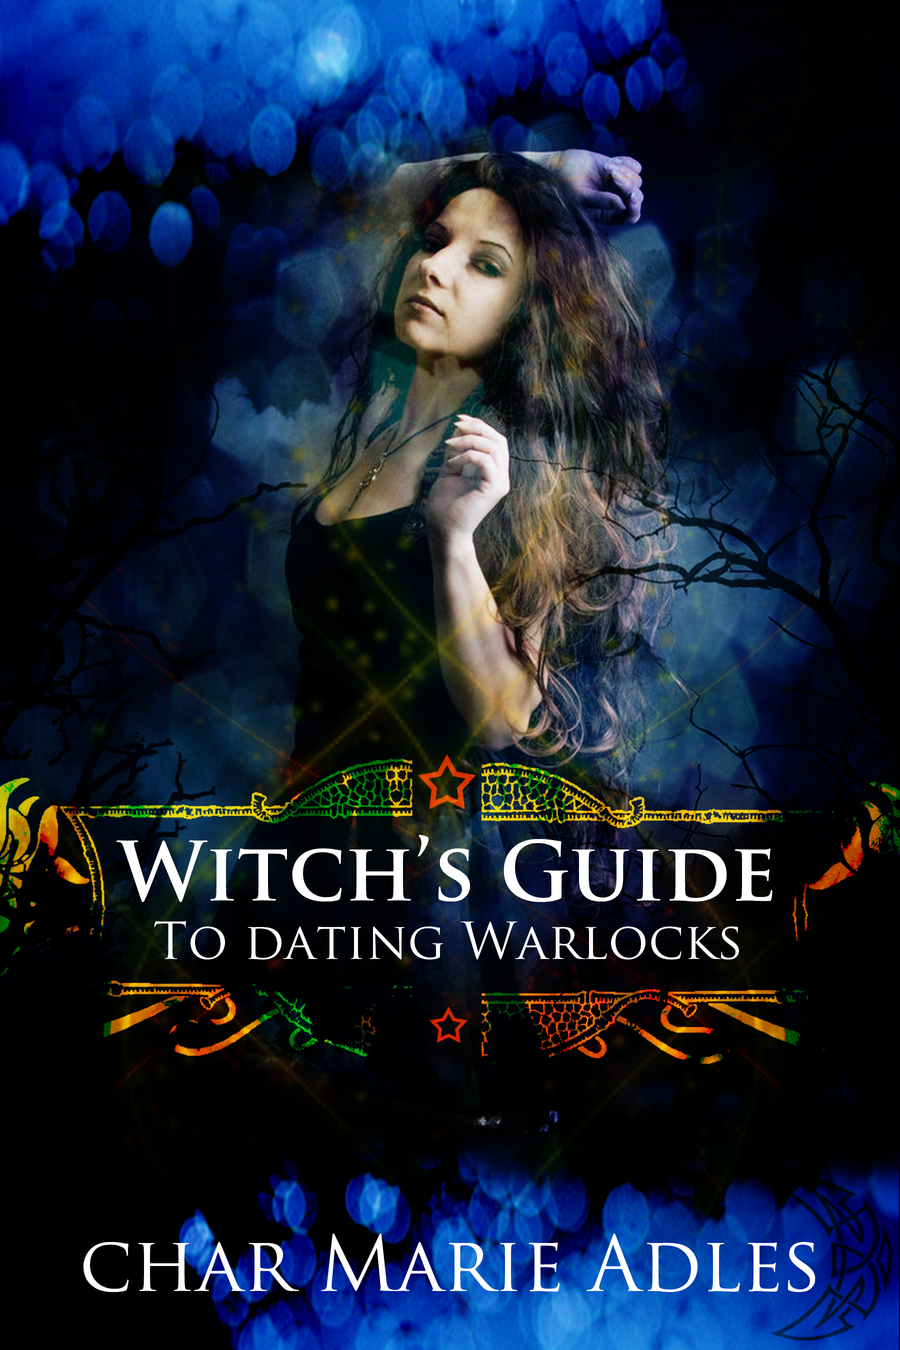 Pagan dating witches